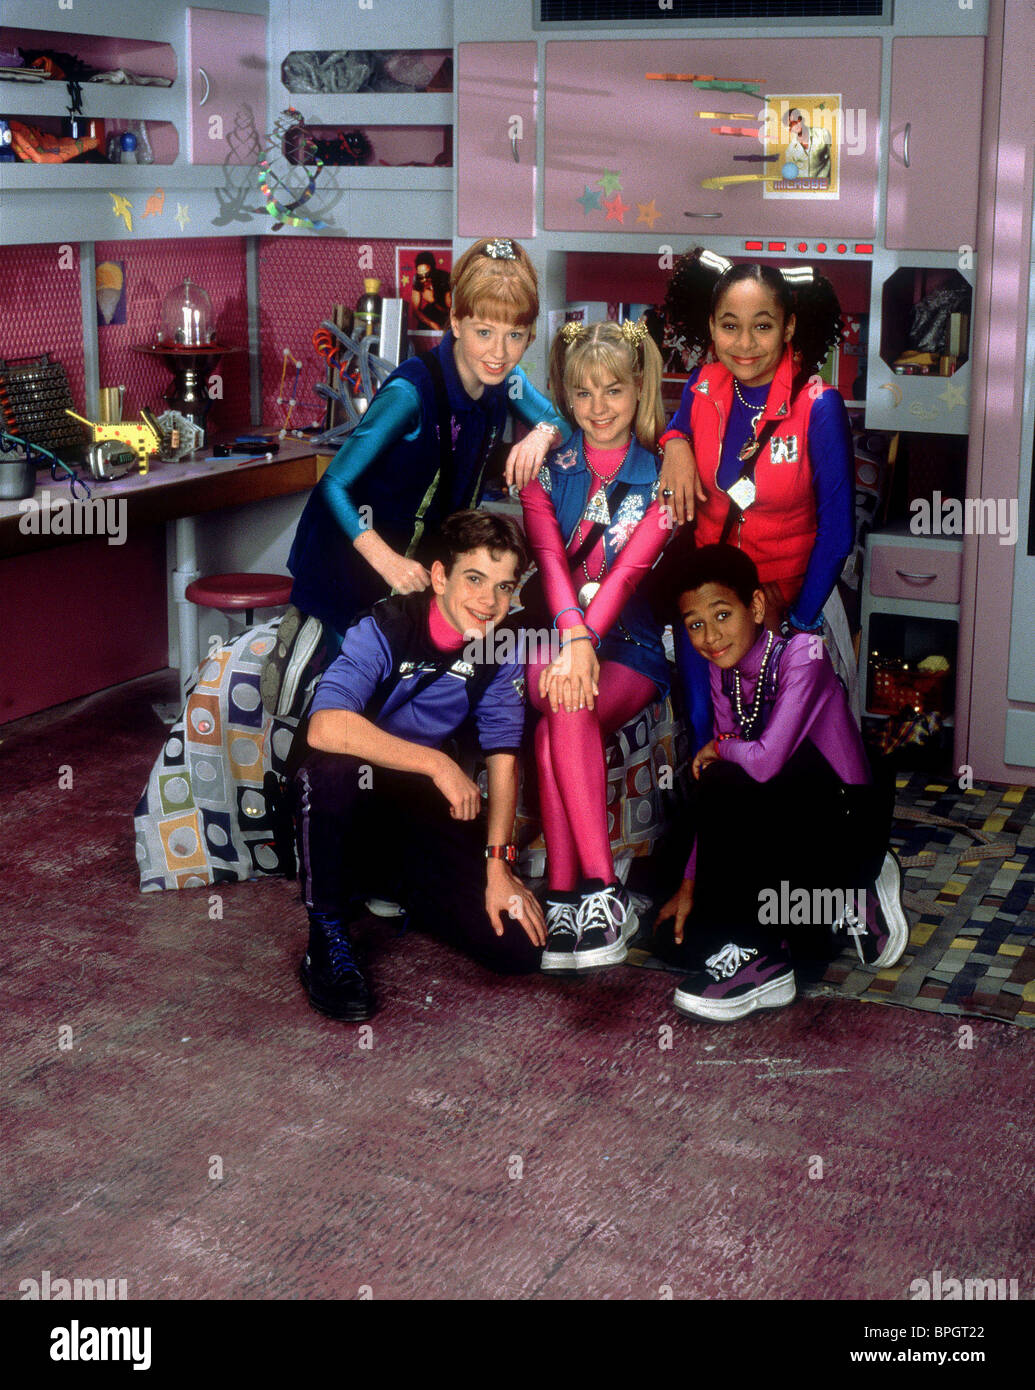 KIRSTEN STORMS & RAVEN-SYMONE ZENON: GIRL OF THE 21ST CENTURY (1999) - Stock Image